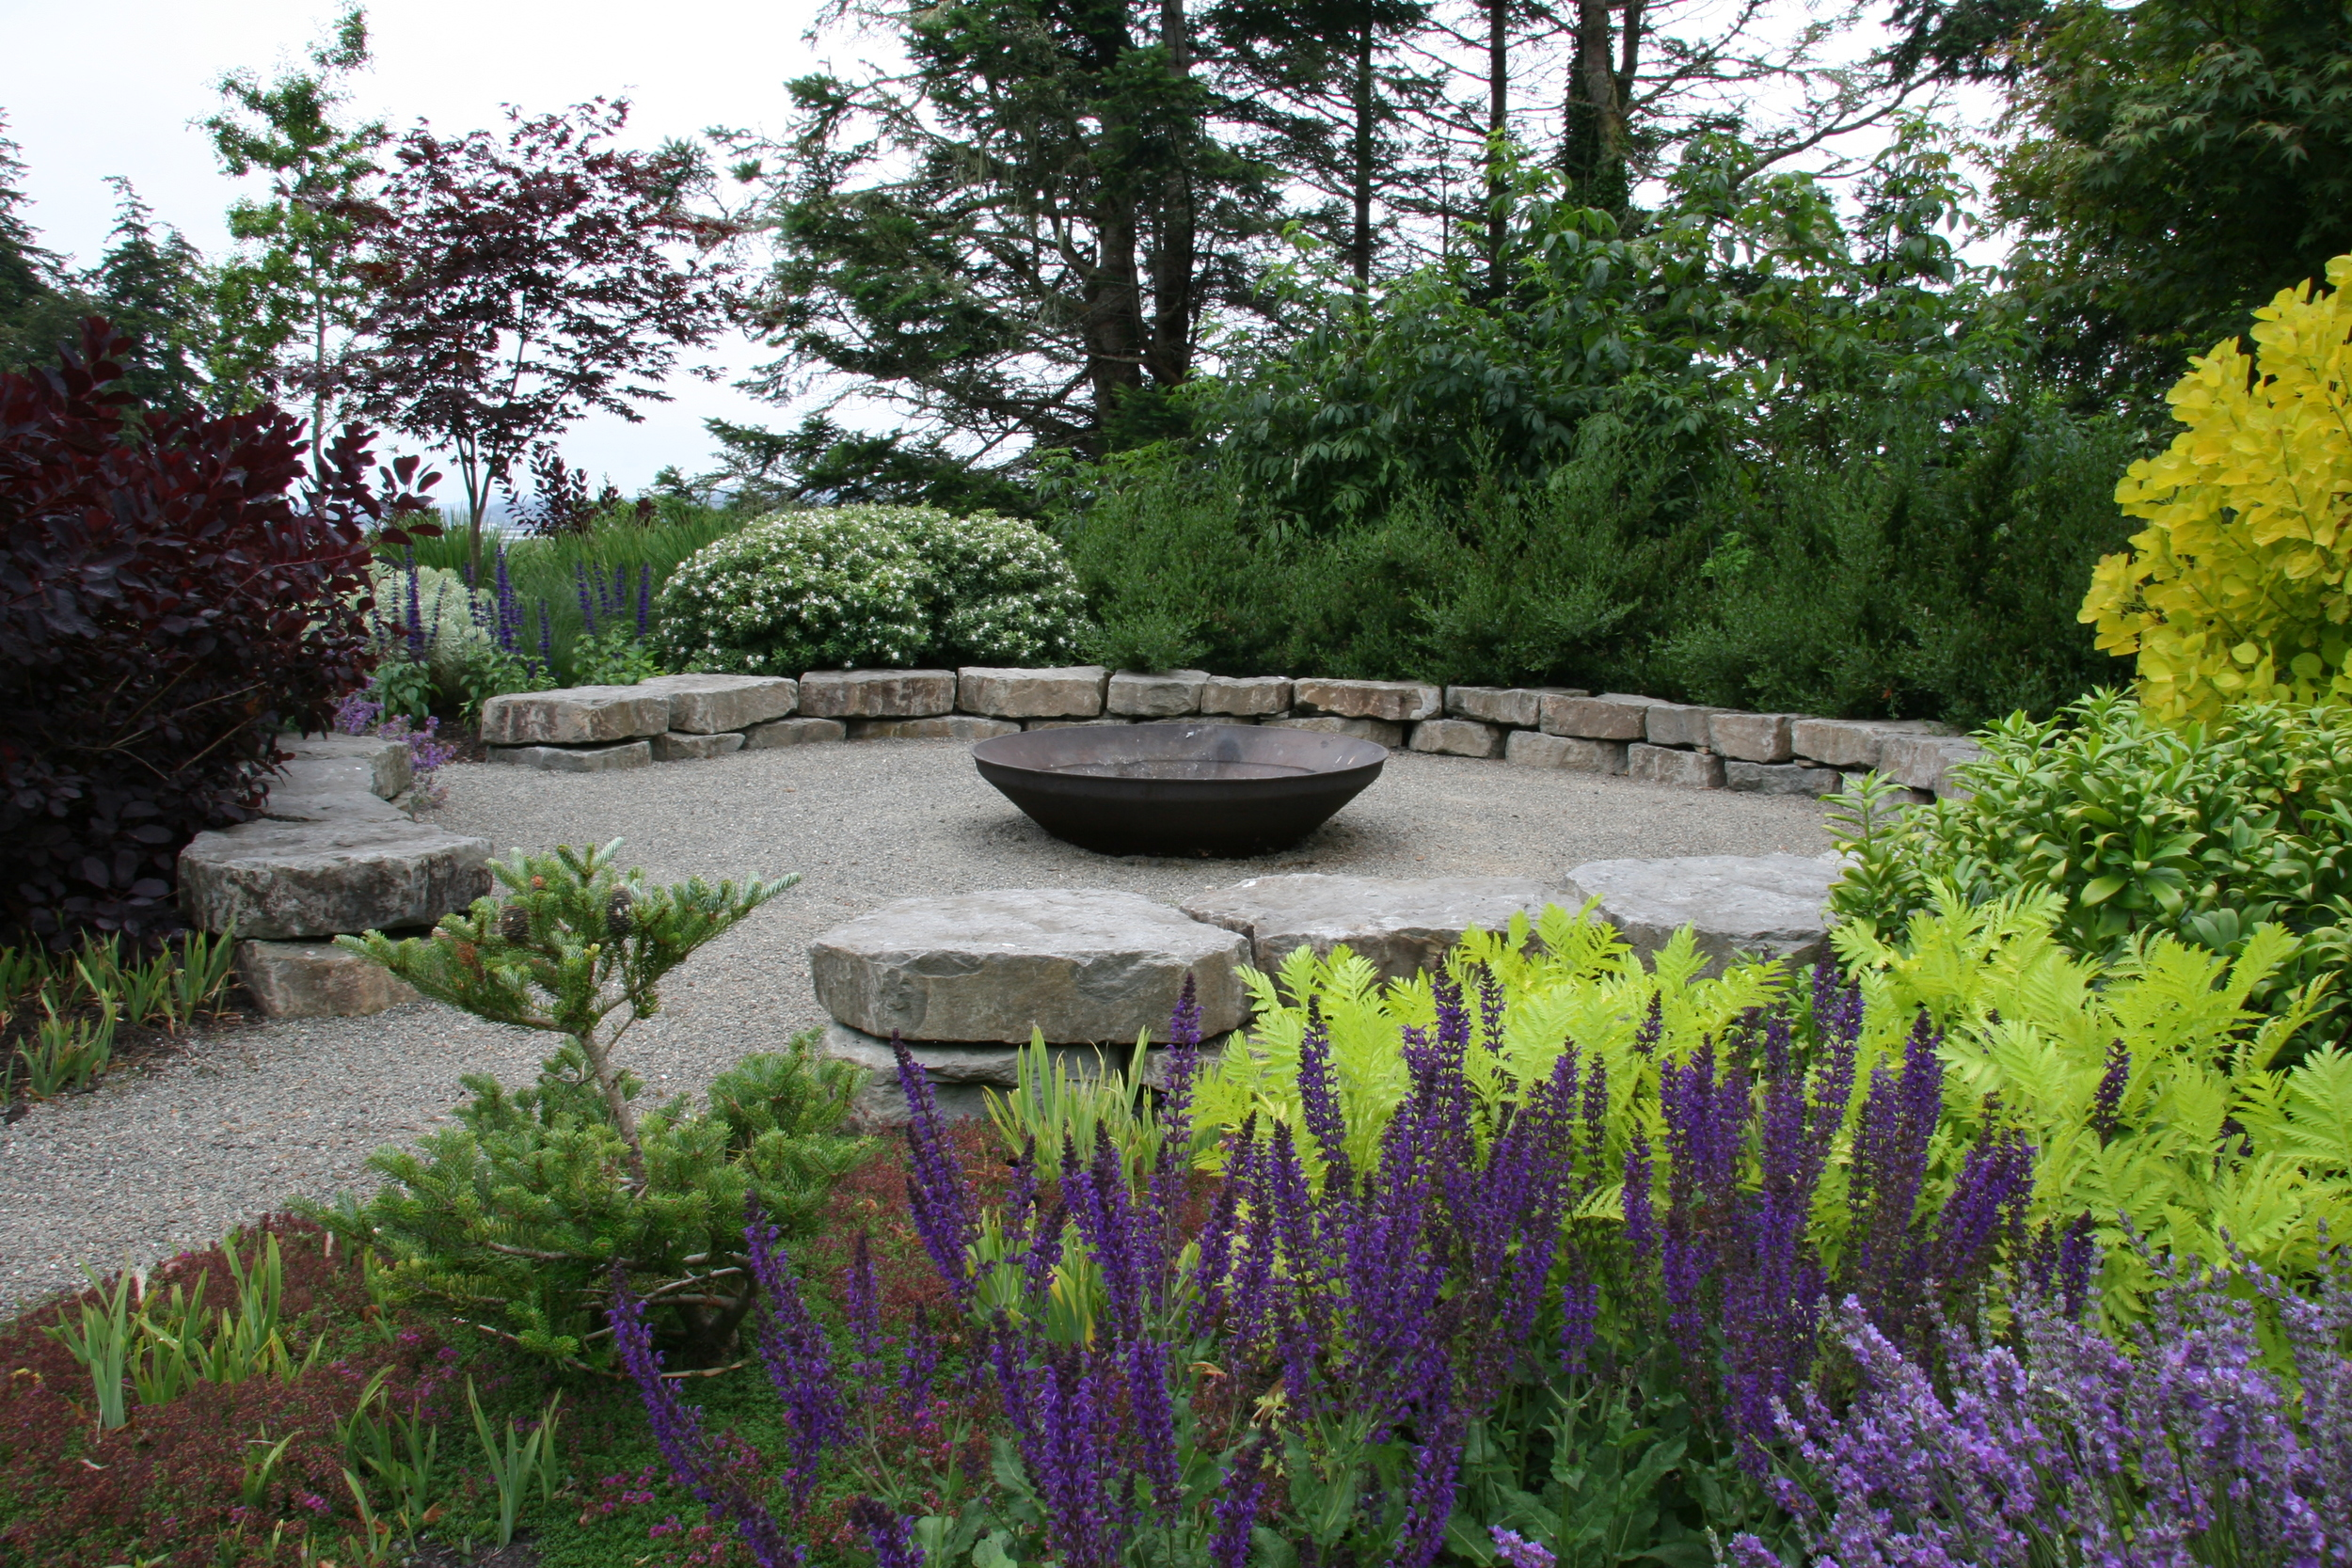 This 20' diameter circular, seating-height stone wall makes a fire pit for a crowd on the Oregon coast.